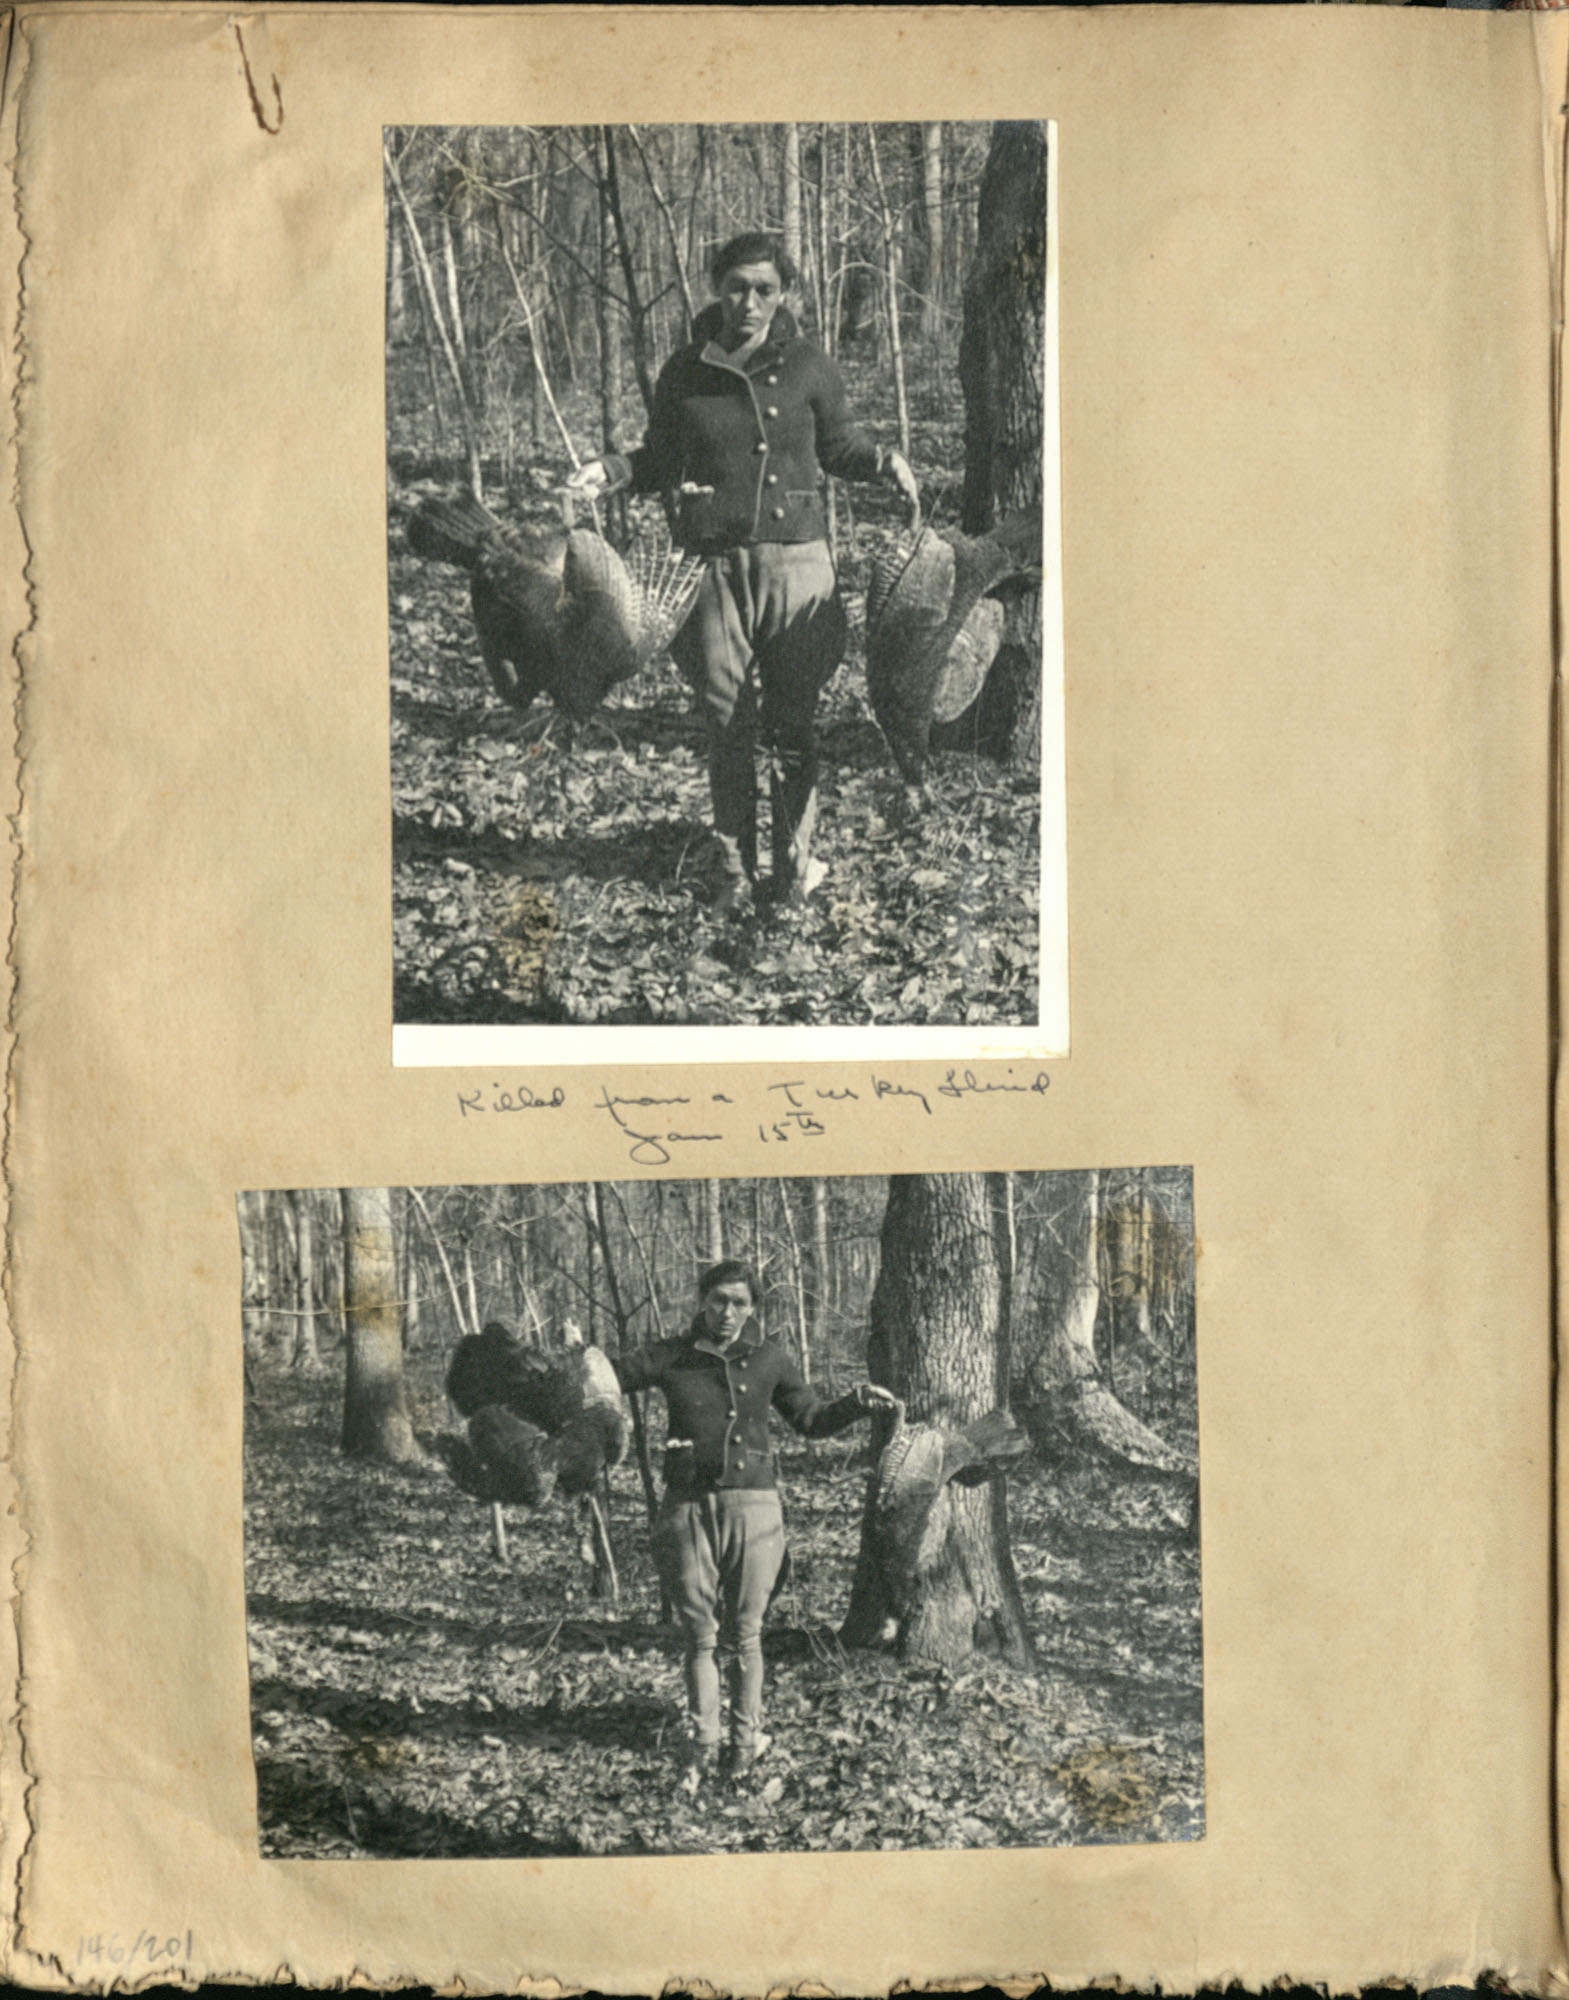 Early Medway and travels album, 1929-1937, page 146